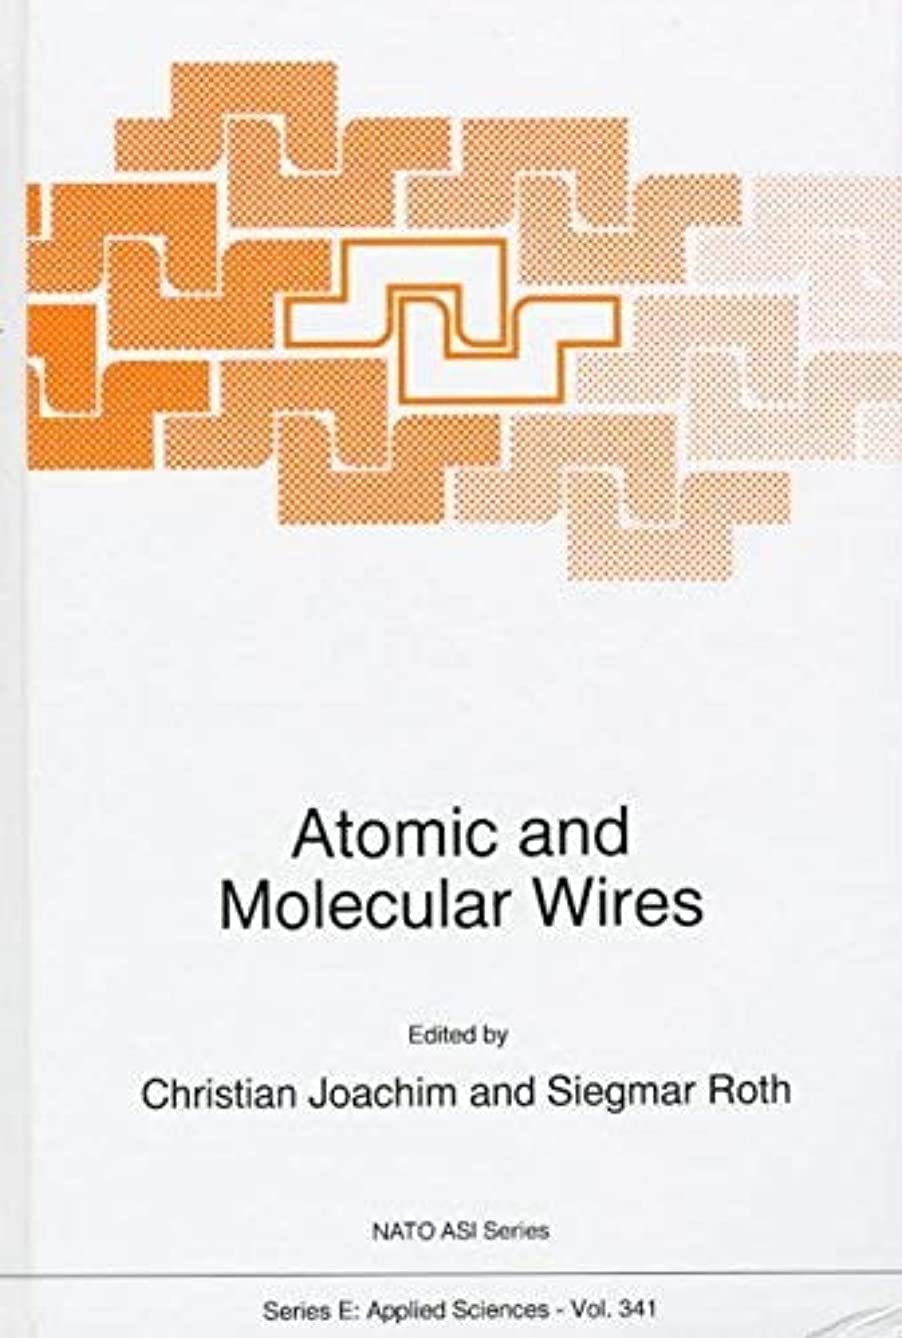 [(Atomic and Molecular Wires : Proceedings of the NATO Advanced Research Workshop, Les Houches, France, 6-10 May 1996)] [Edited by C.J. Joachim ] published on (July, 1997)